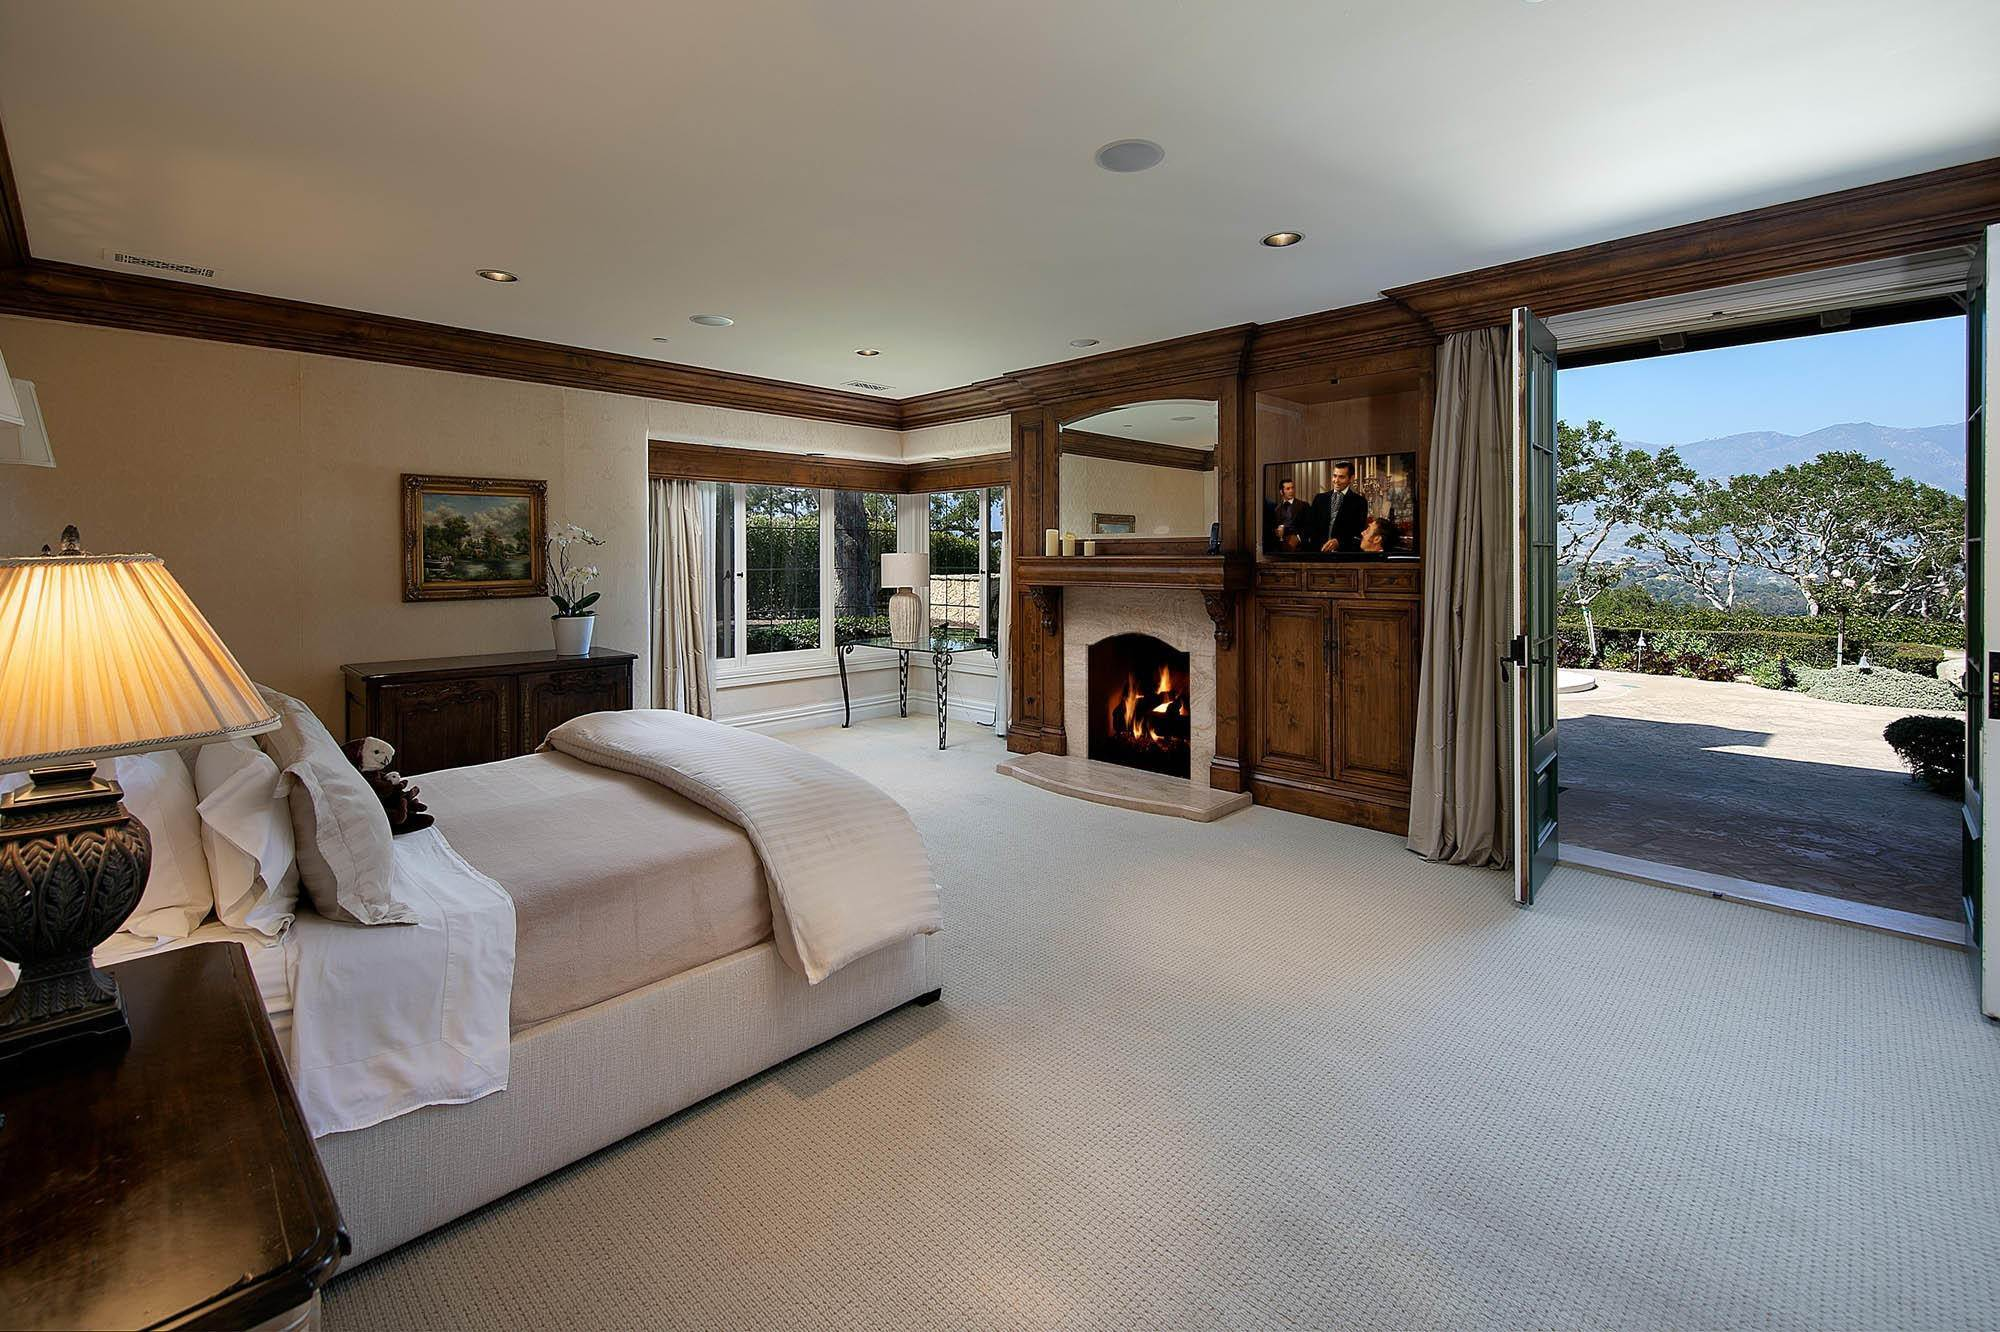 13. Estate for Sale at 4180 Cresta Avenue Santa Barbara, California 93110 United States